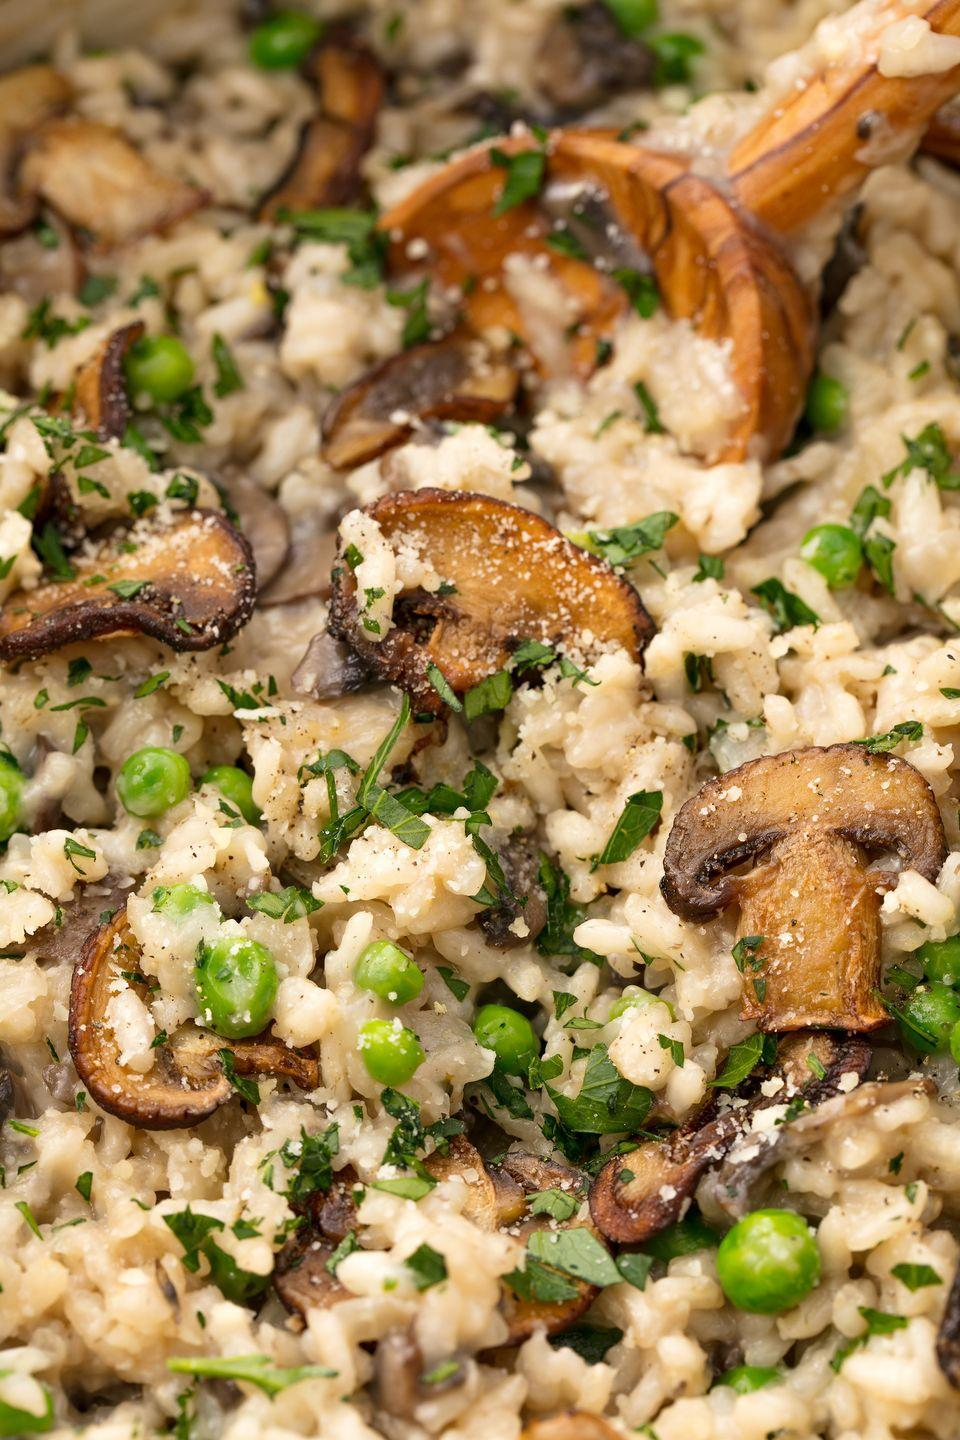 "<p>Just keep stirring. </p><p>Get the recipe from <a href=""https://www.delish.com/cooking/recipe-ideas/recipes/a55215/easy-mushroom-risotto-recipe/"" rel=""nofollow noopener"" target=""_blank"" data-ylk=""slk:Delish"" class=""link rapid-noclick-resp"">Delish</a>. </p>"